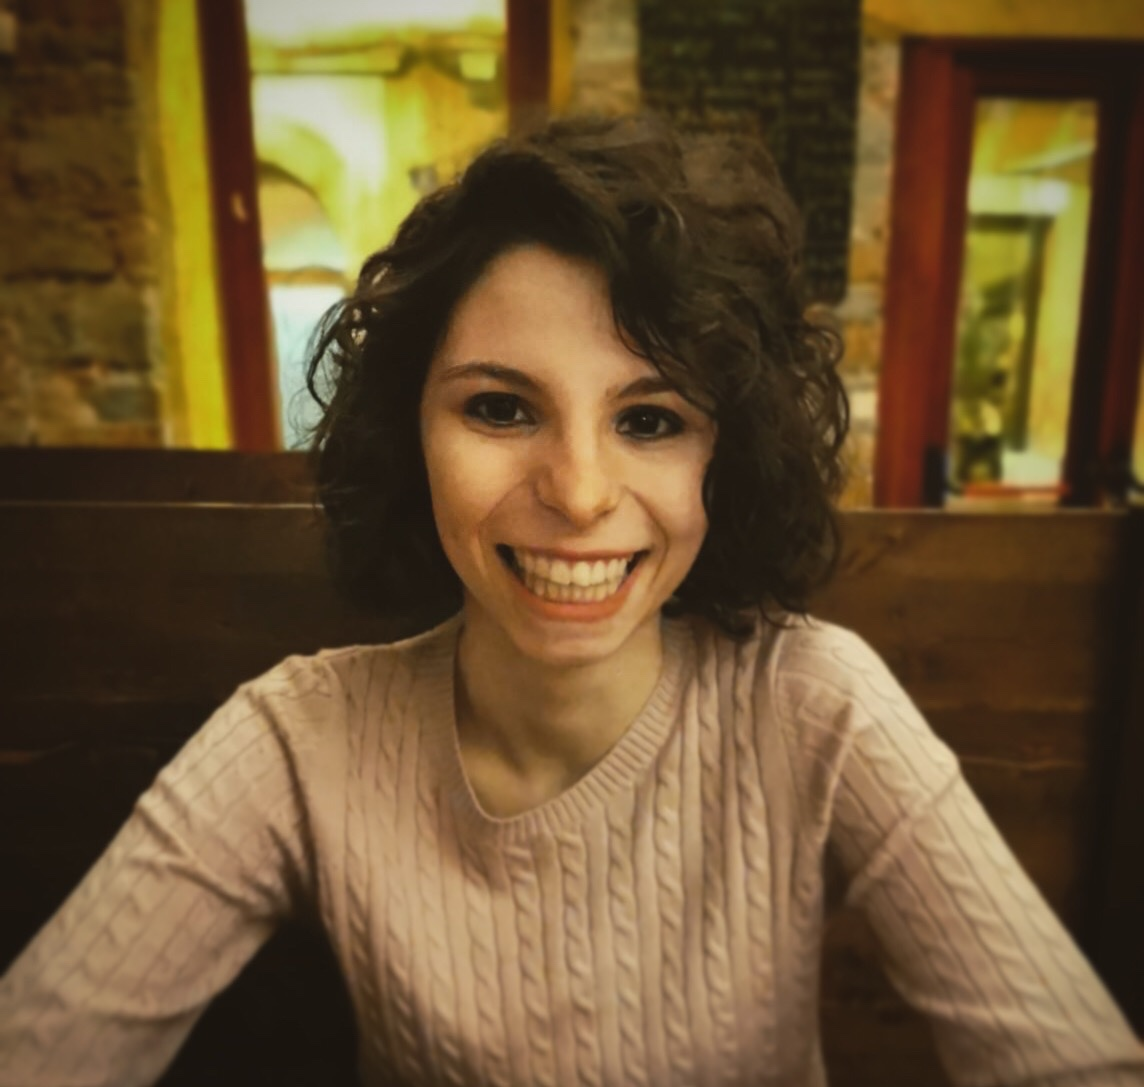 test Twitter Media - Pia Viscomi's @EUErasmusPlus fellowship to carry out her master thesis in the lab has been extended! Pia is a student at the @UniTrieste and is working with us in the mapping of candidate adaptive #transposons to their ecologically relevant phenotypes!! https://t.co/etOOOk4oas